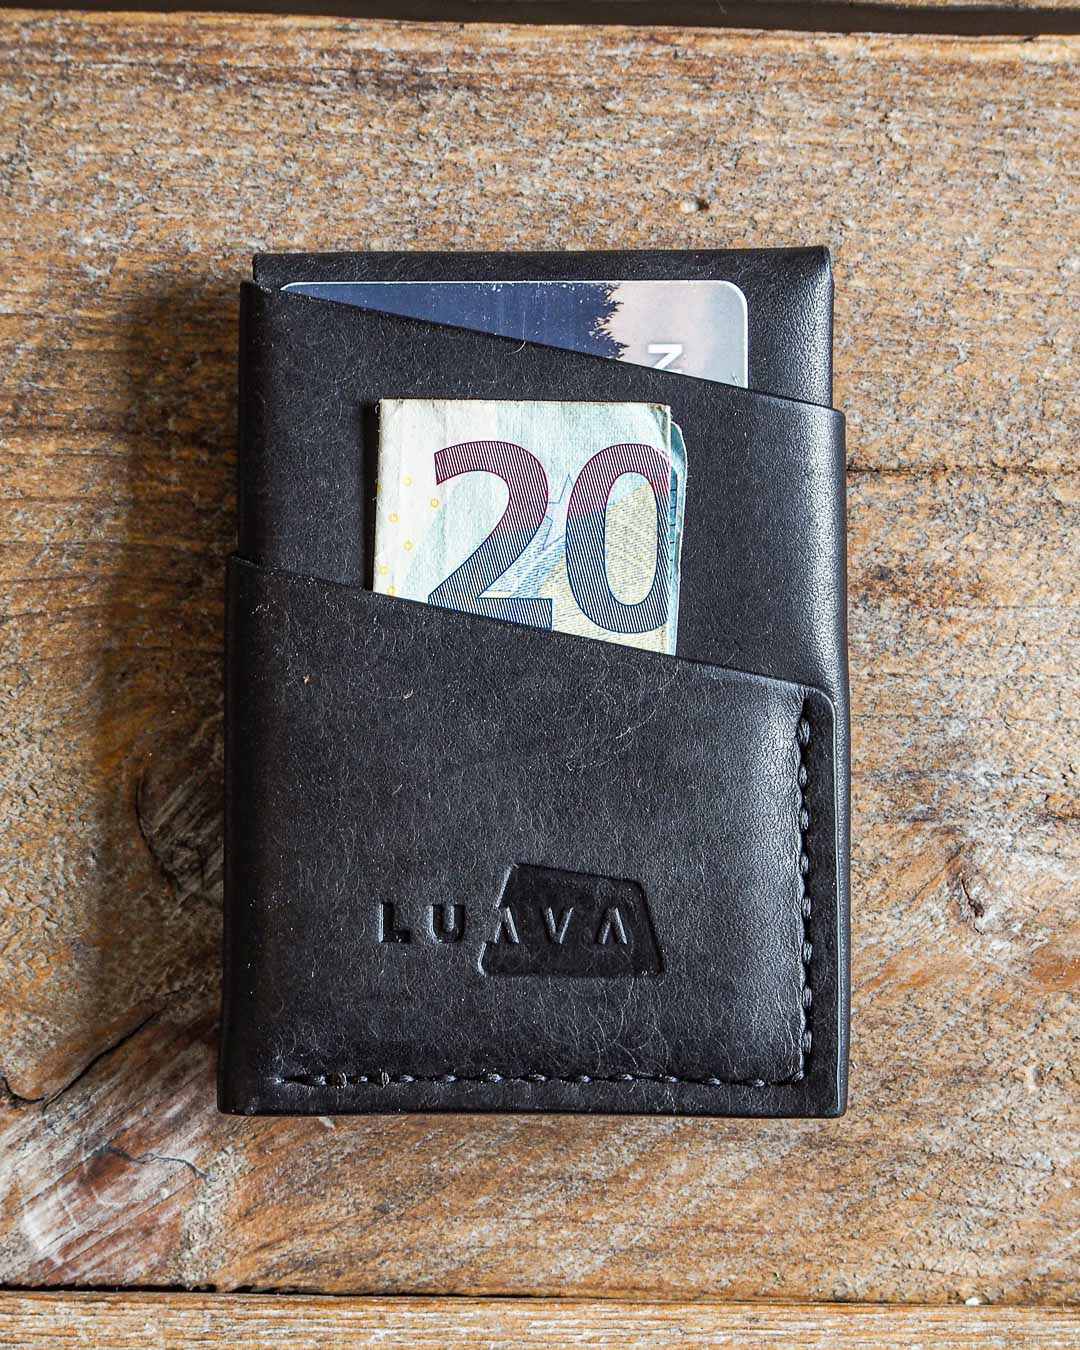 Luava handmade leather wallet handcrafted card holder cardholder made in finland overfold pueblo black back in use